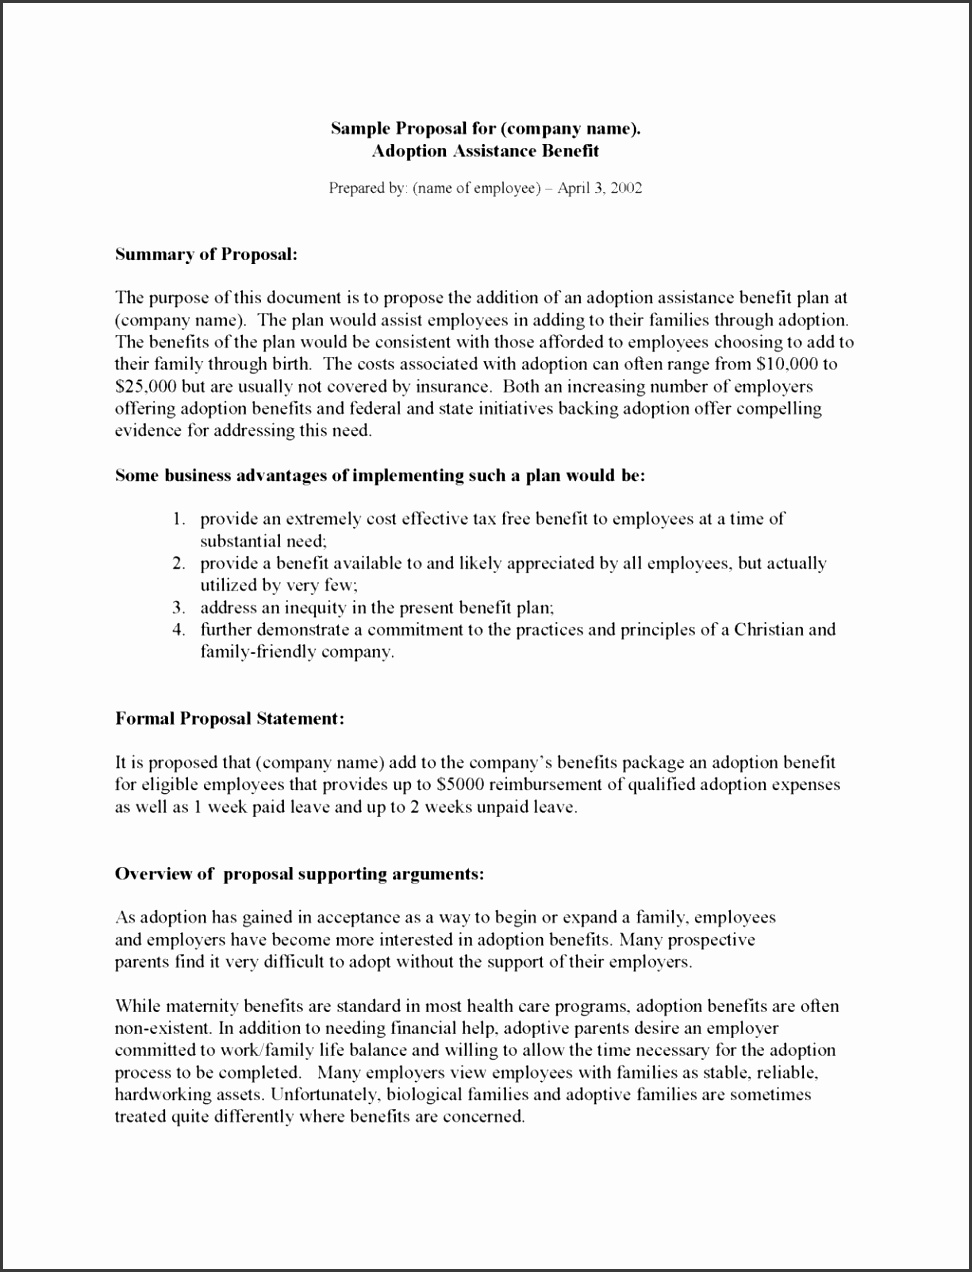 Free Business Proposal Template Templated Information Technologyan Systems pany